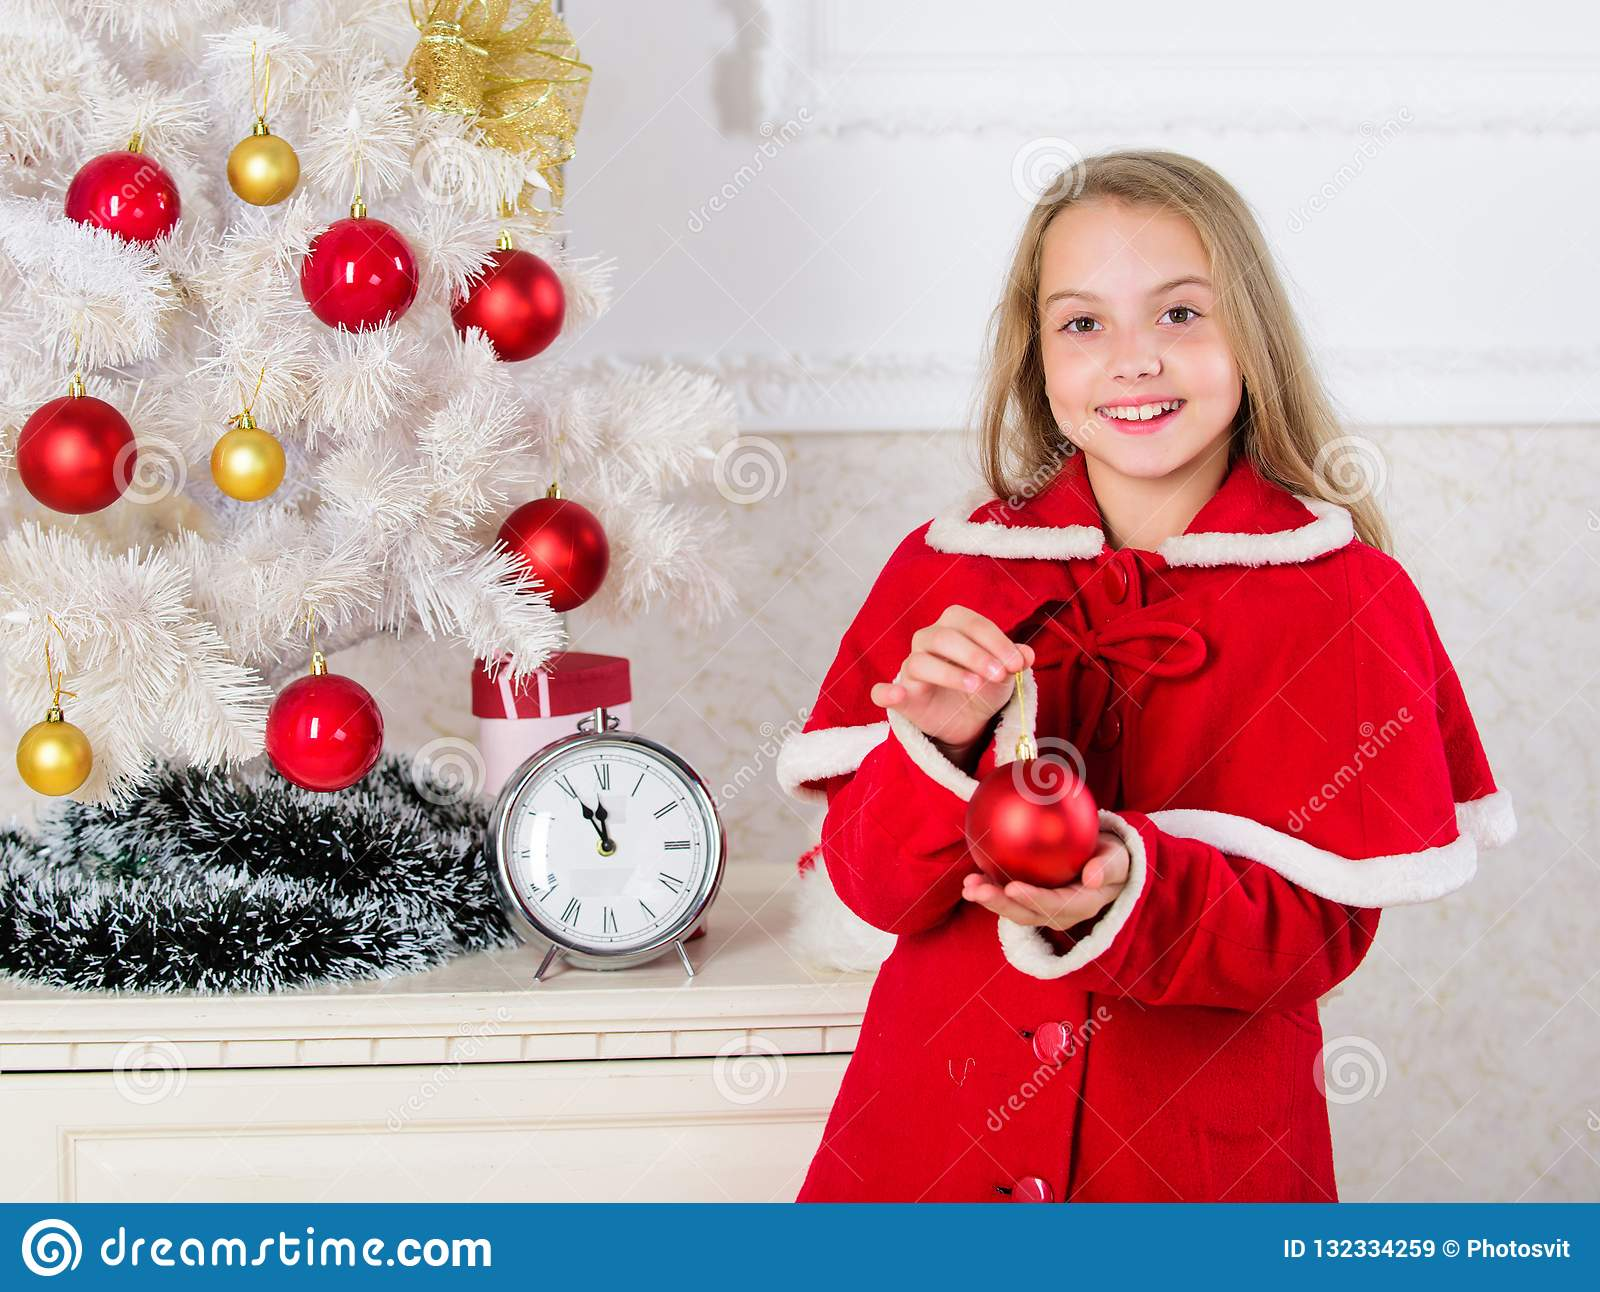 Child red costume hold christmas ornament ball. Christmas ball traditional decor. Kids can brighten up christmas tree by